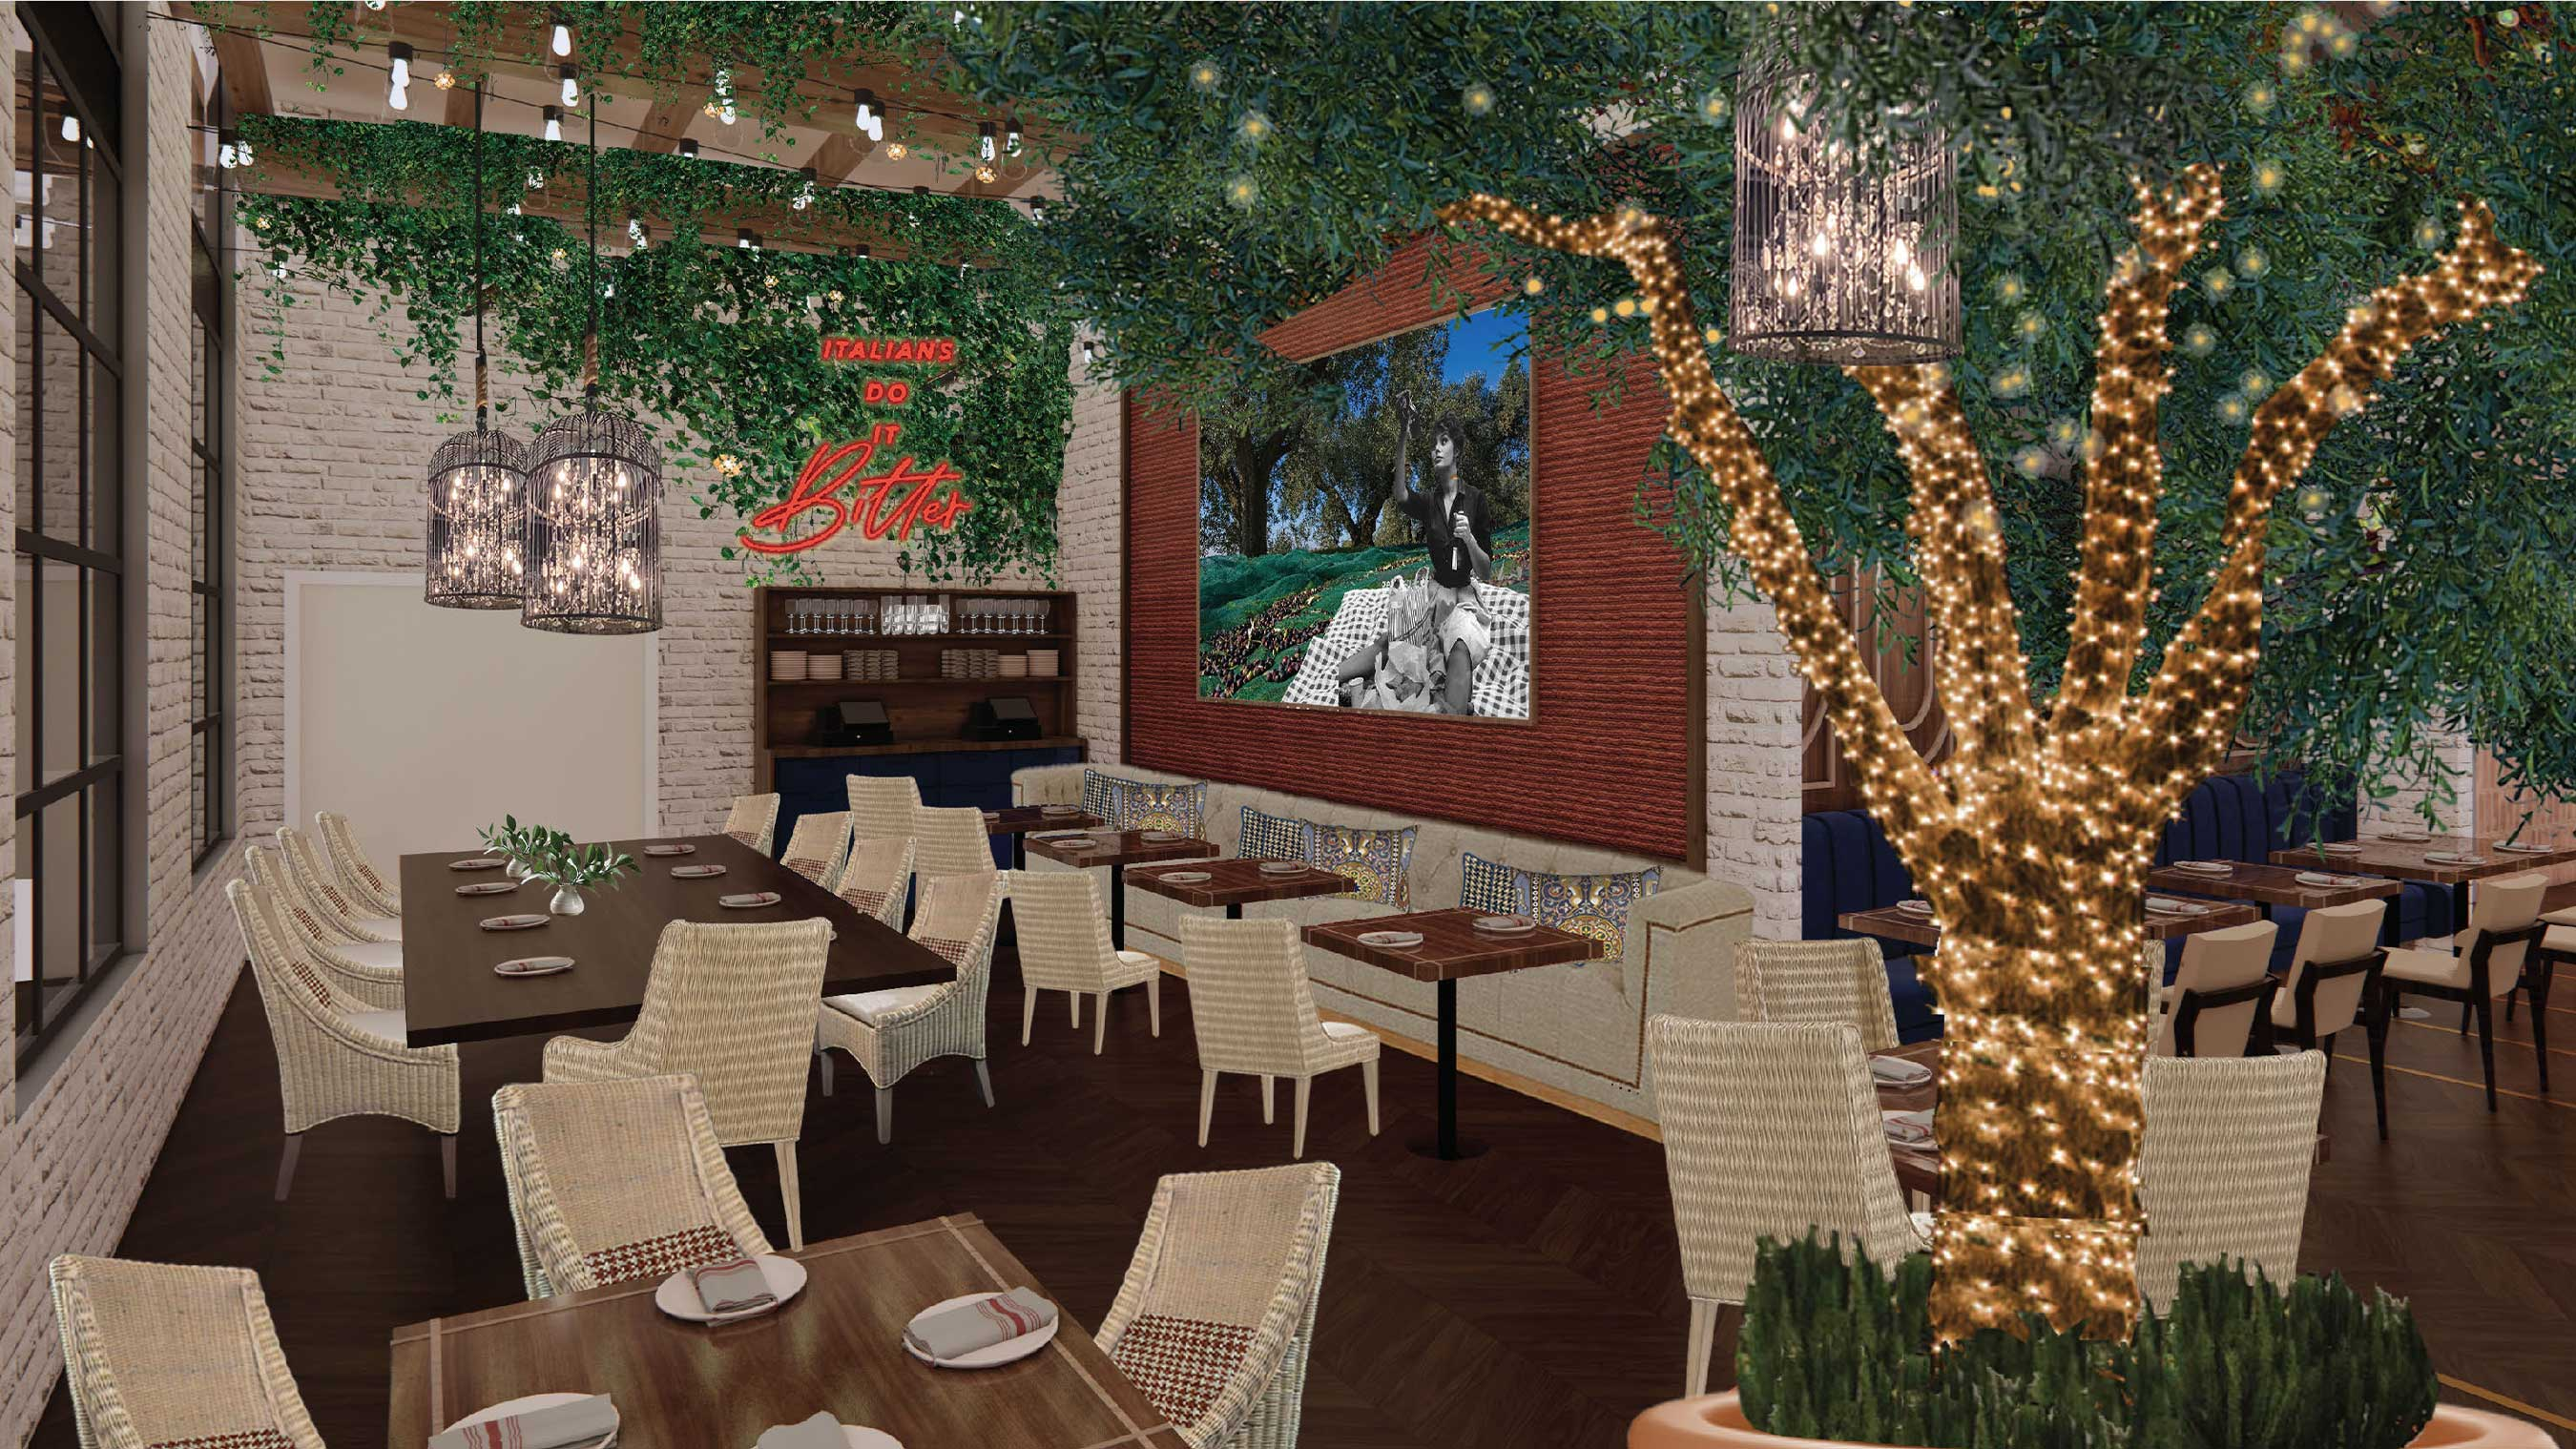 Rendering of Ballo, a new Italian dining concept from Chef Shawn McClain opening at SAHARA Las Vegas late 2021